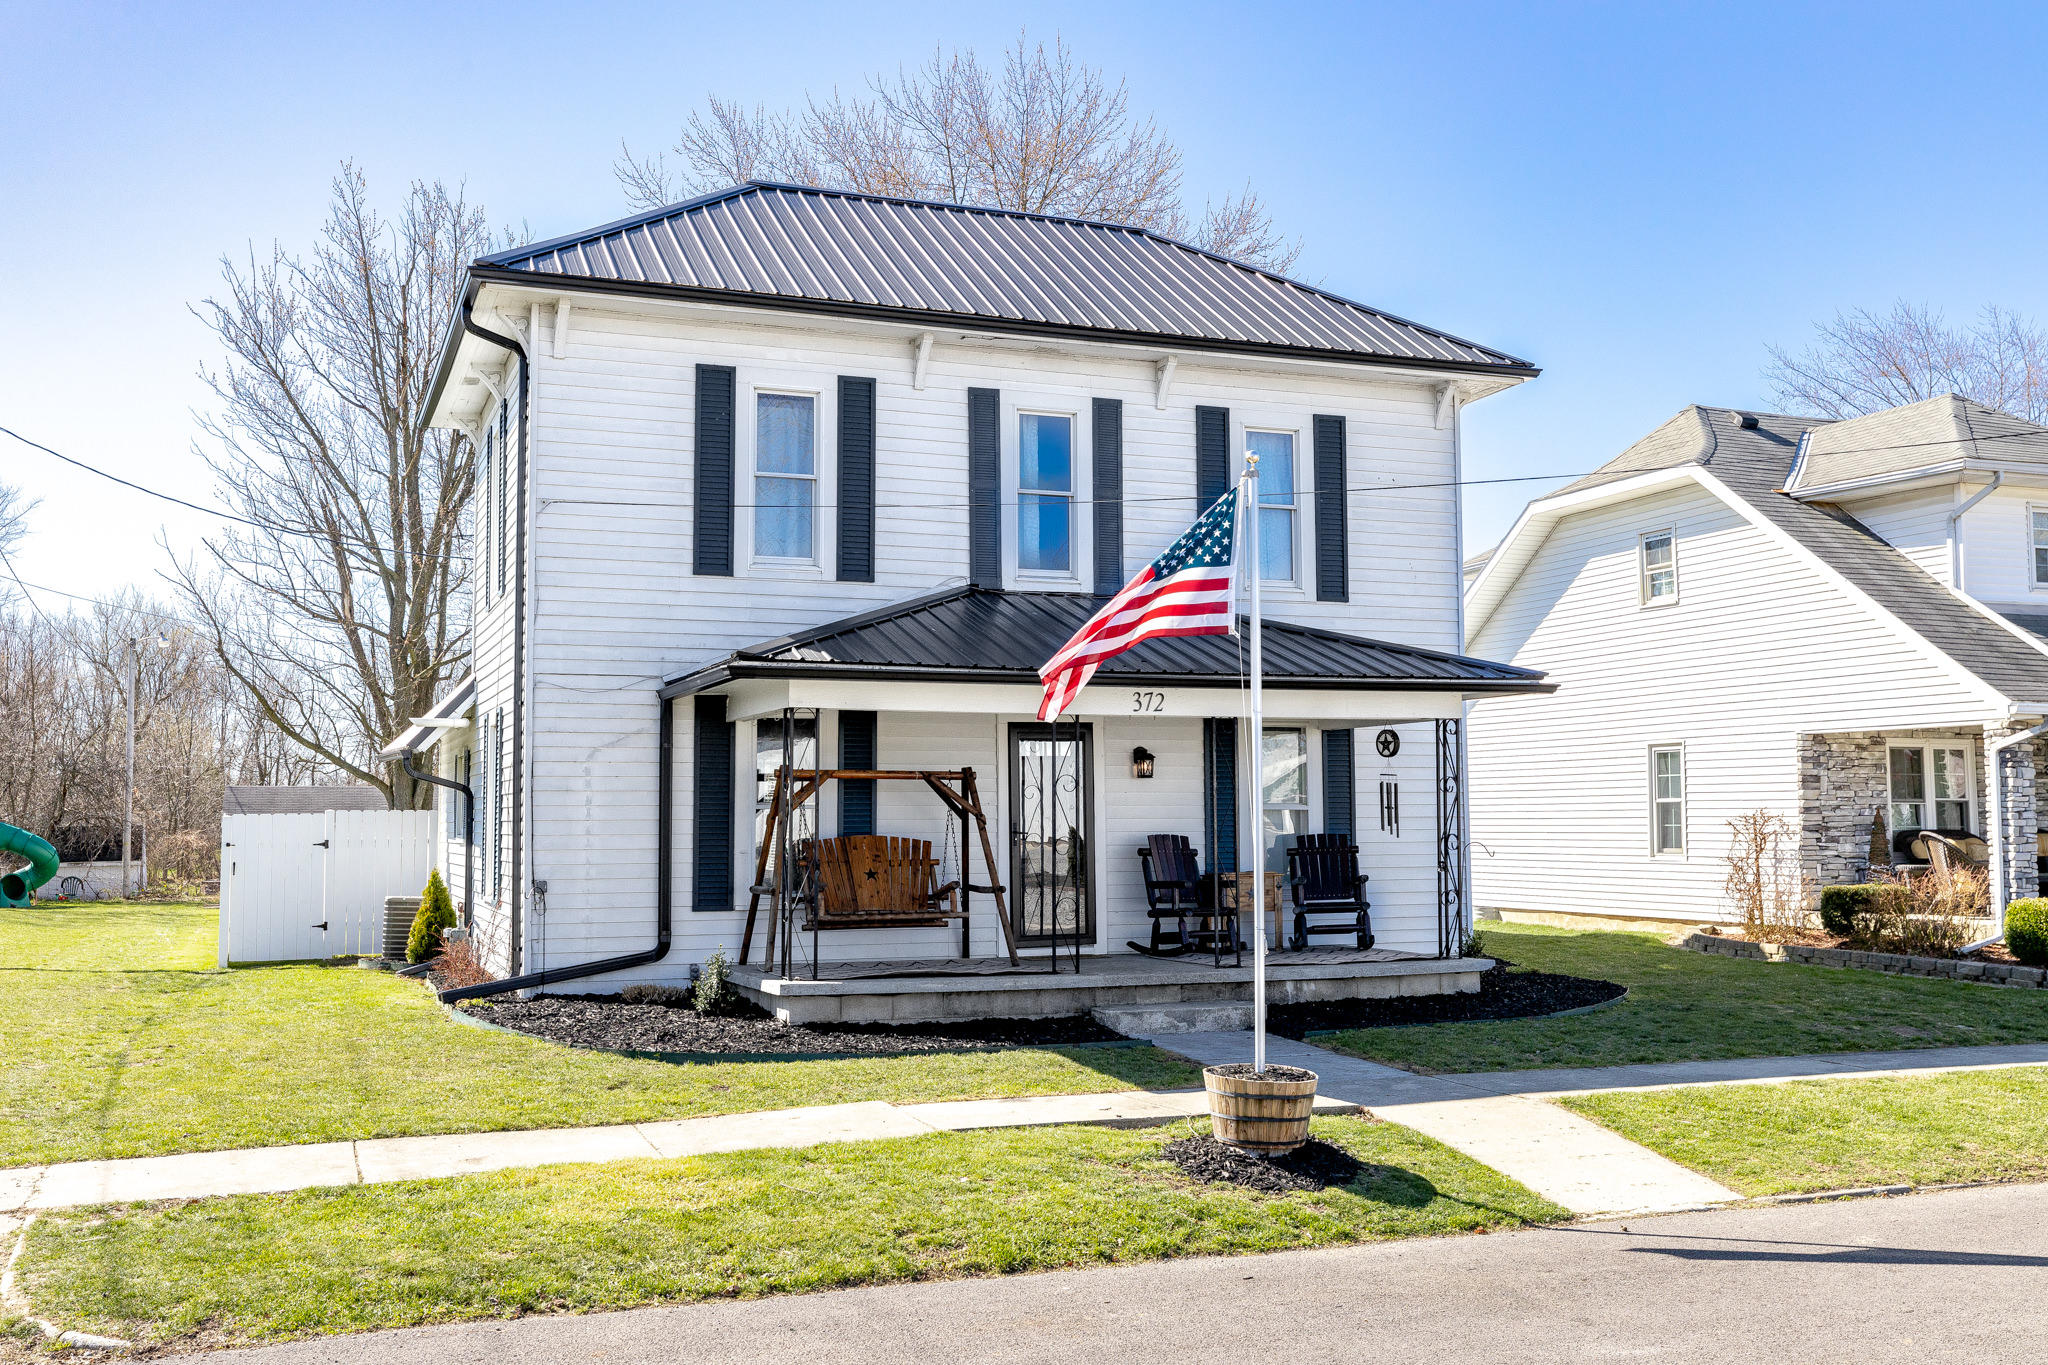 372 State St West Mansfield, OH